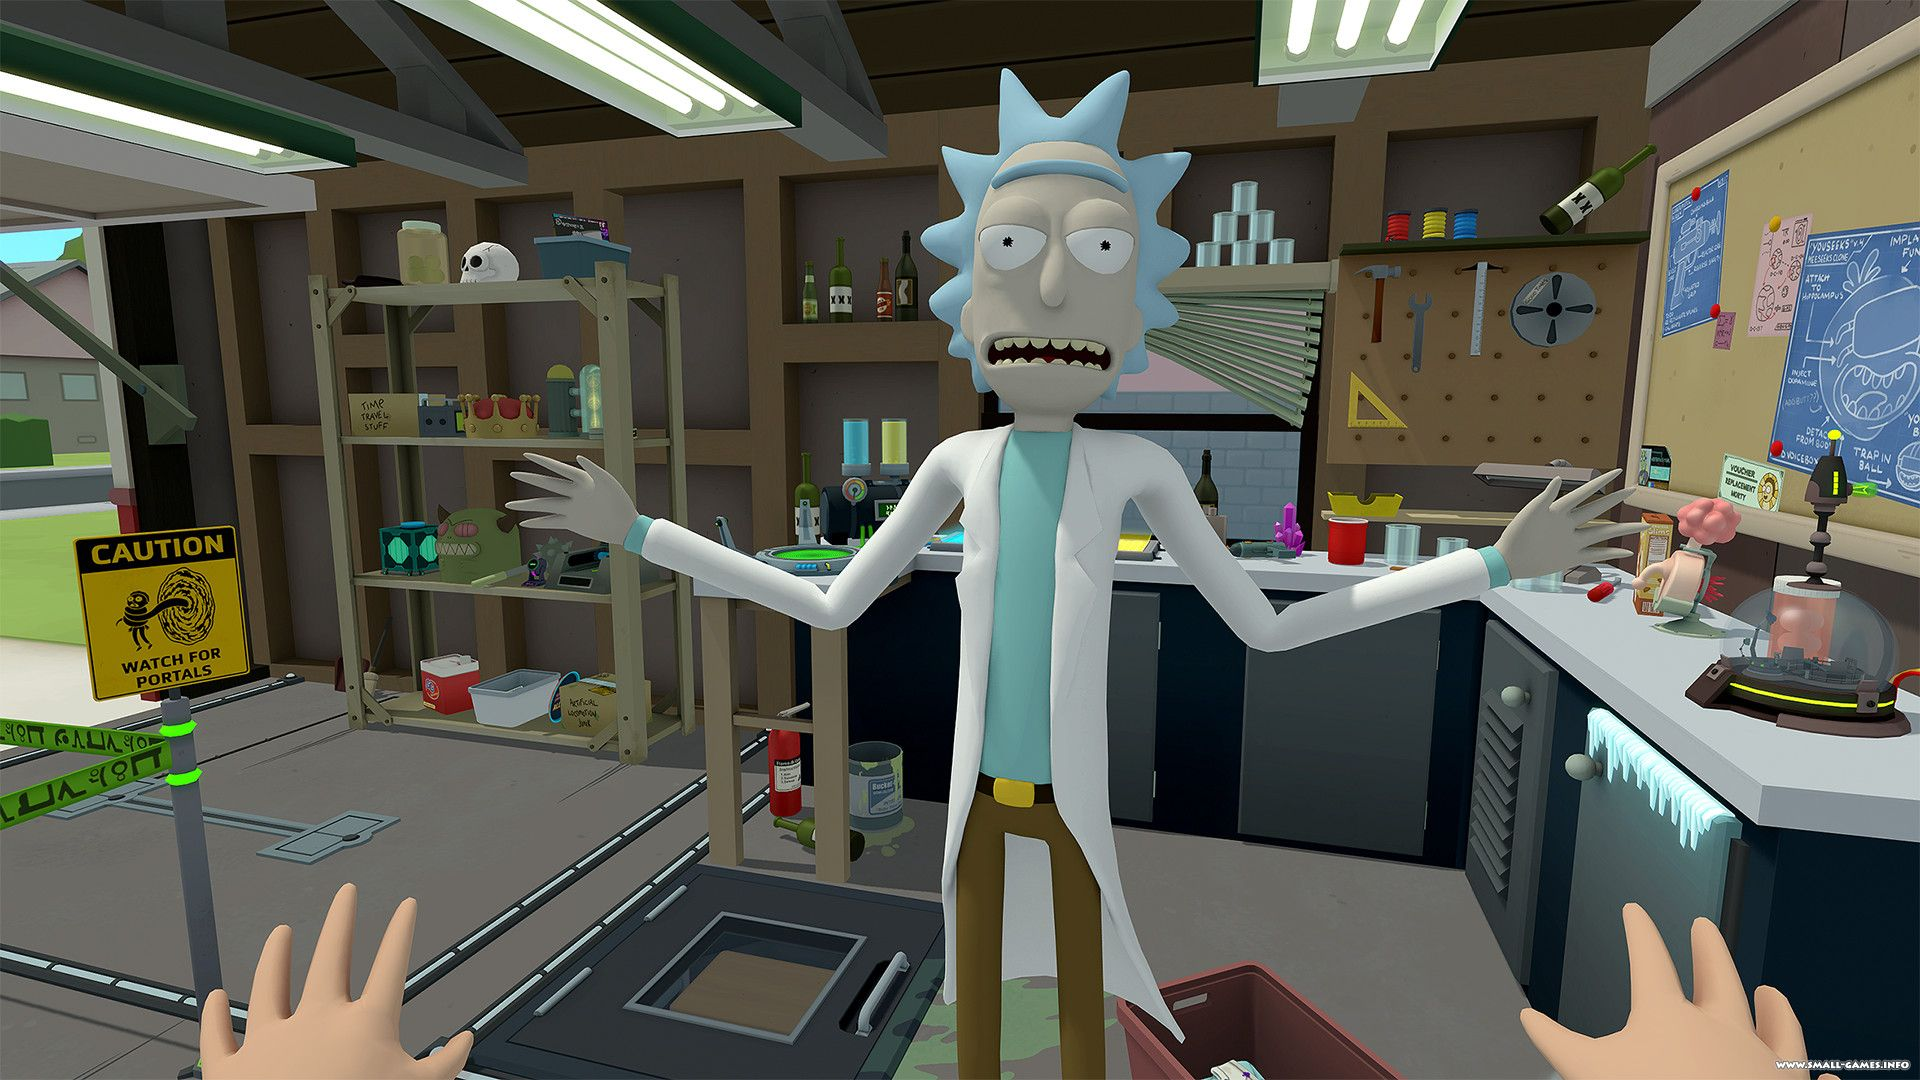 Скриншот *Rick and Morty Virtual Rick-ality [PS4 VR Only] 5.05 / 6.72 [EUR] (2018) [Английский] (v1.00)*